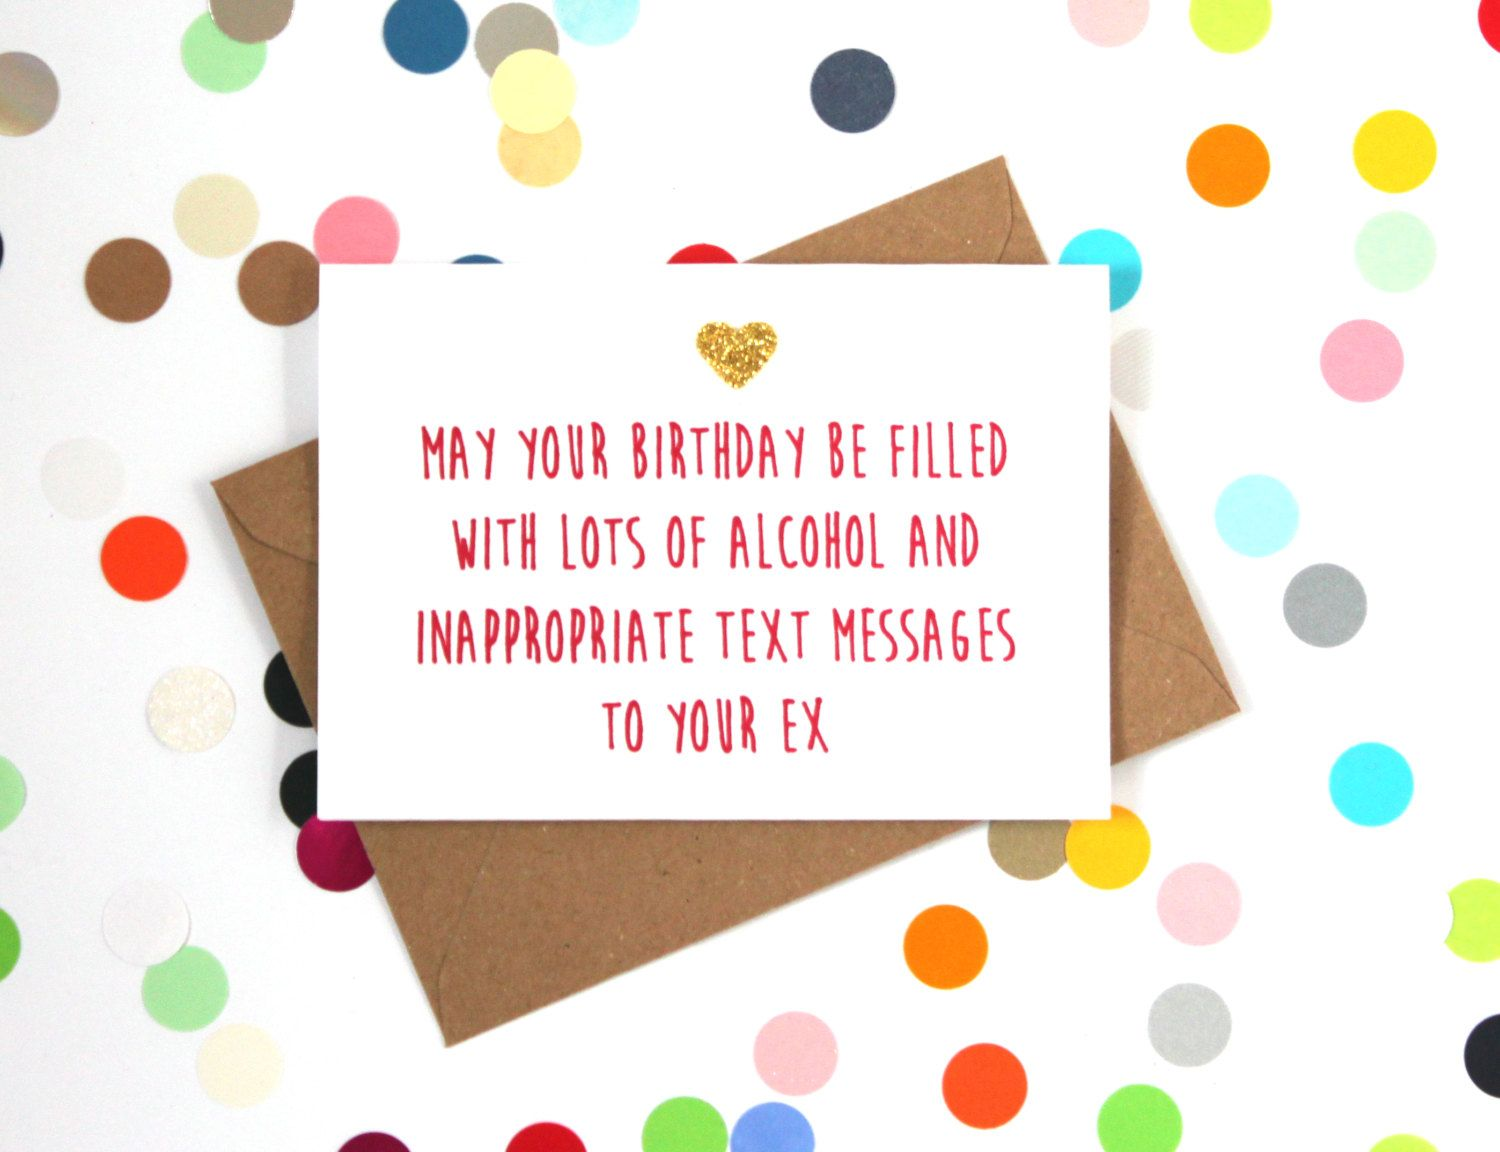 Funny birthday card funny friend birthday card may your birthday funny birthday card funny friend birthday card may your birthday be filled with lots of alcohol and inappropriate text messages to your ex bookmarktalkfo Choice Image